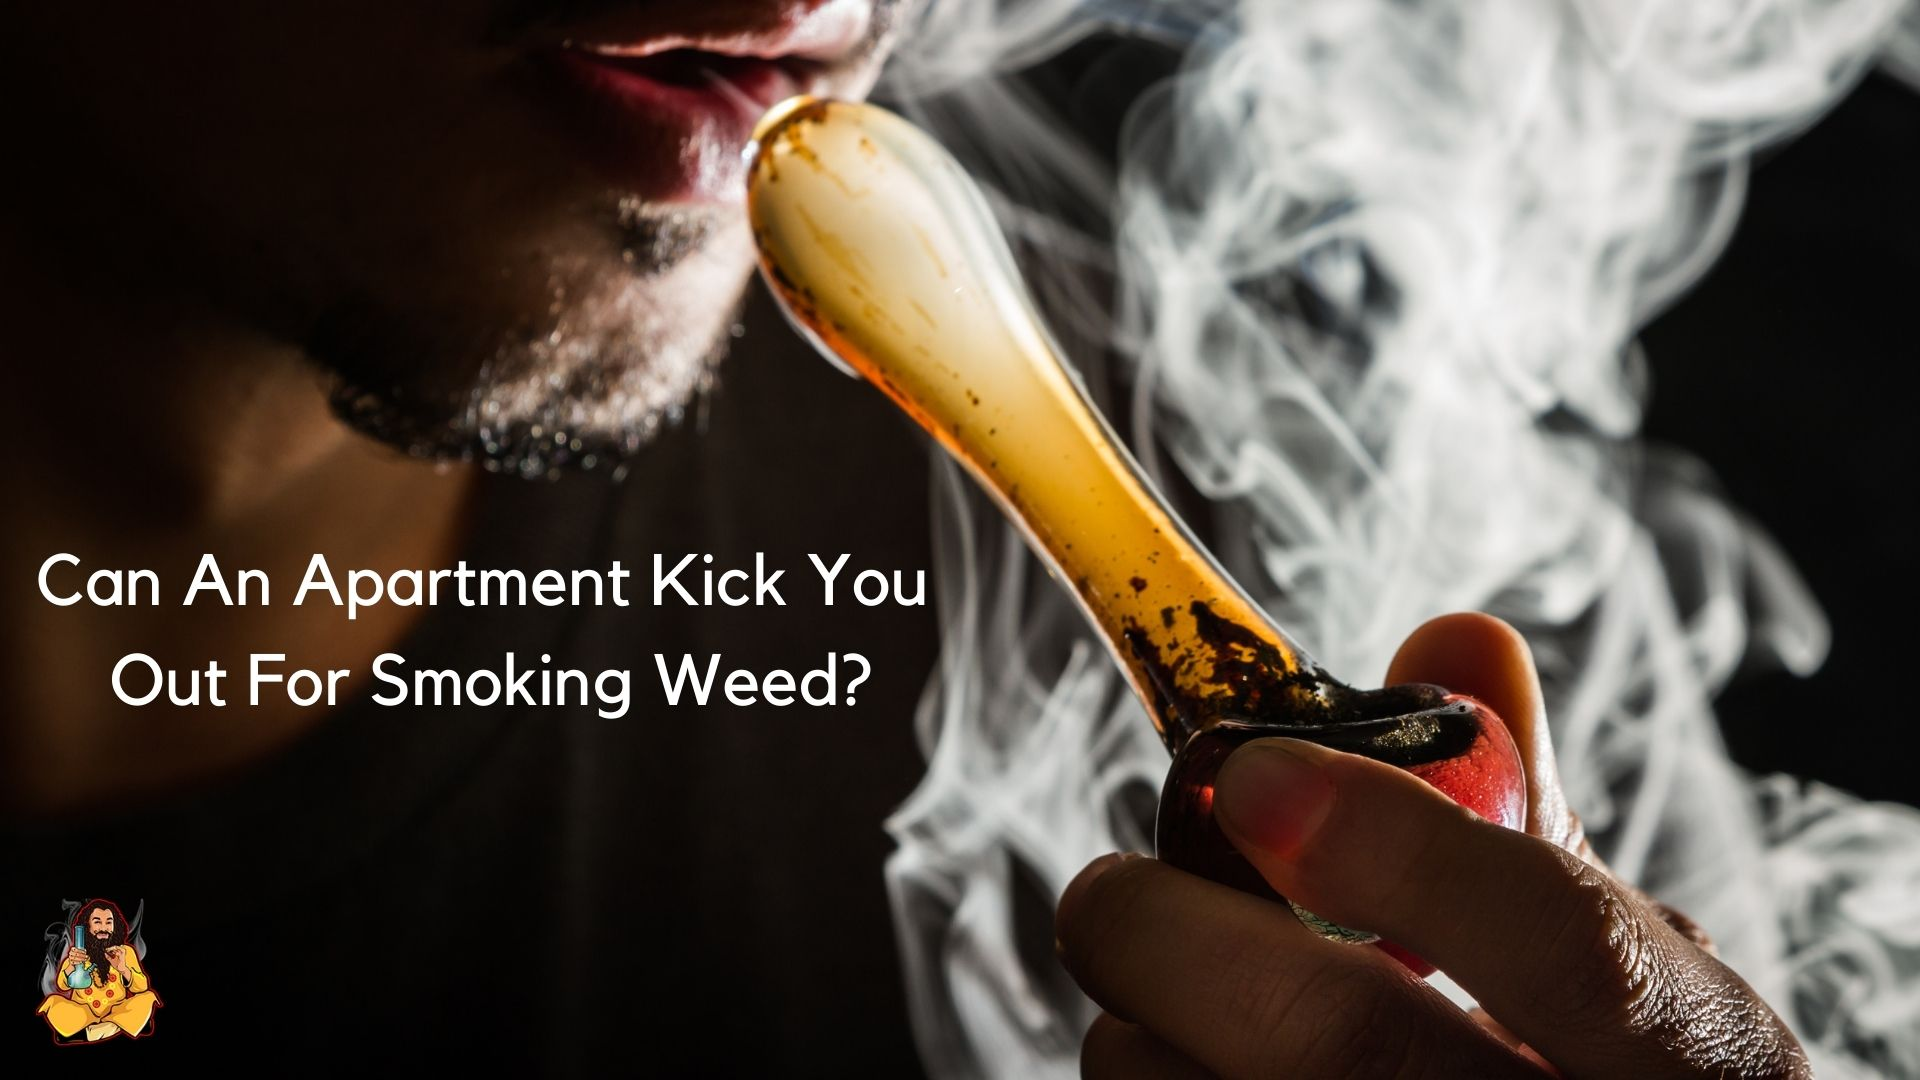 Can An Apartment Kick You Out For Smoking Weed